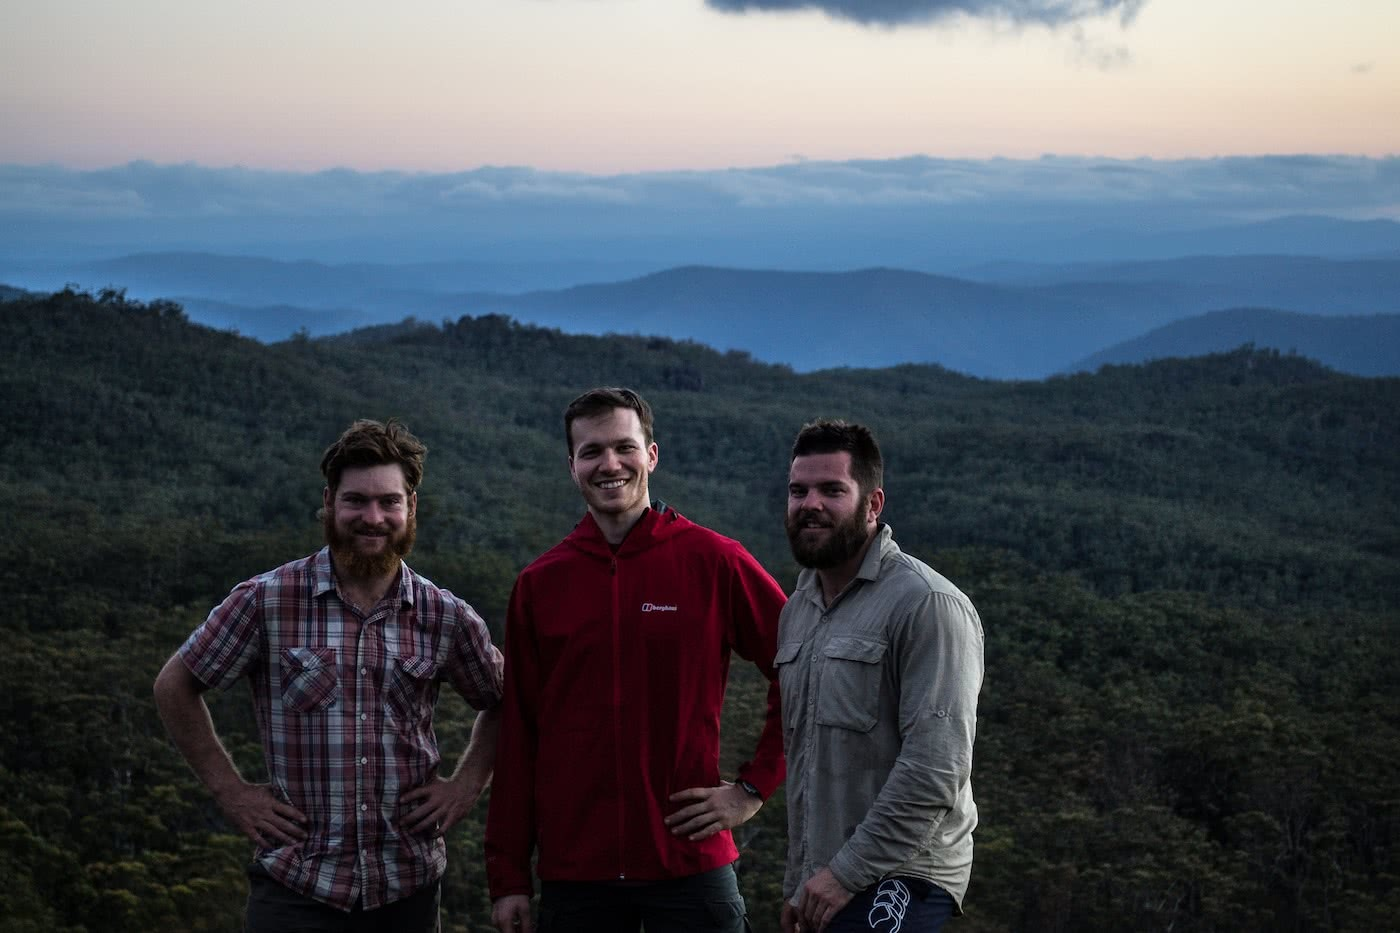 The Best of the New England Highlands (NSW) Dan Parkes mates, view, forest